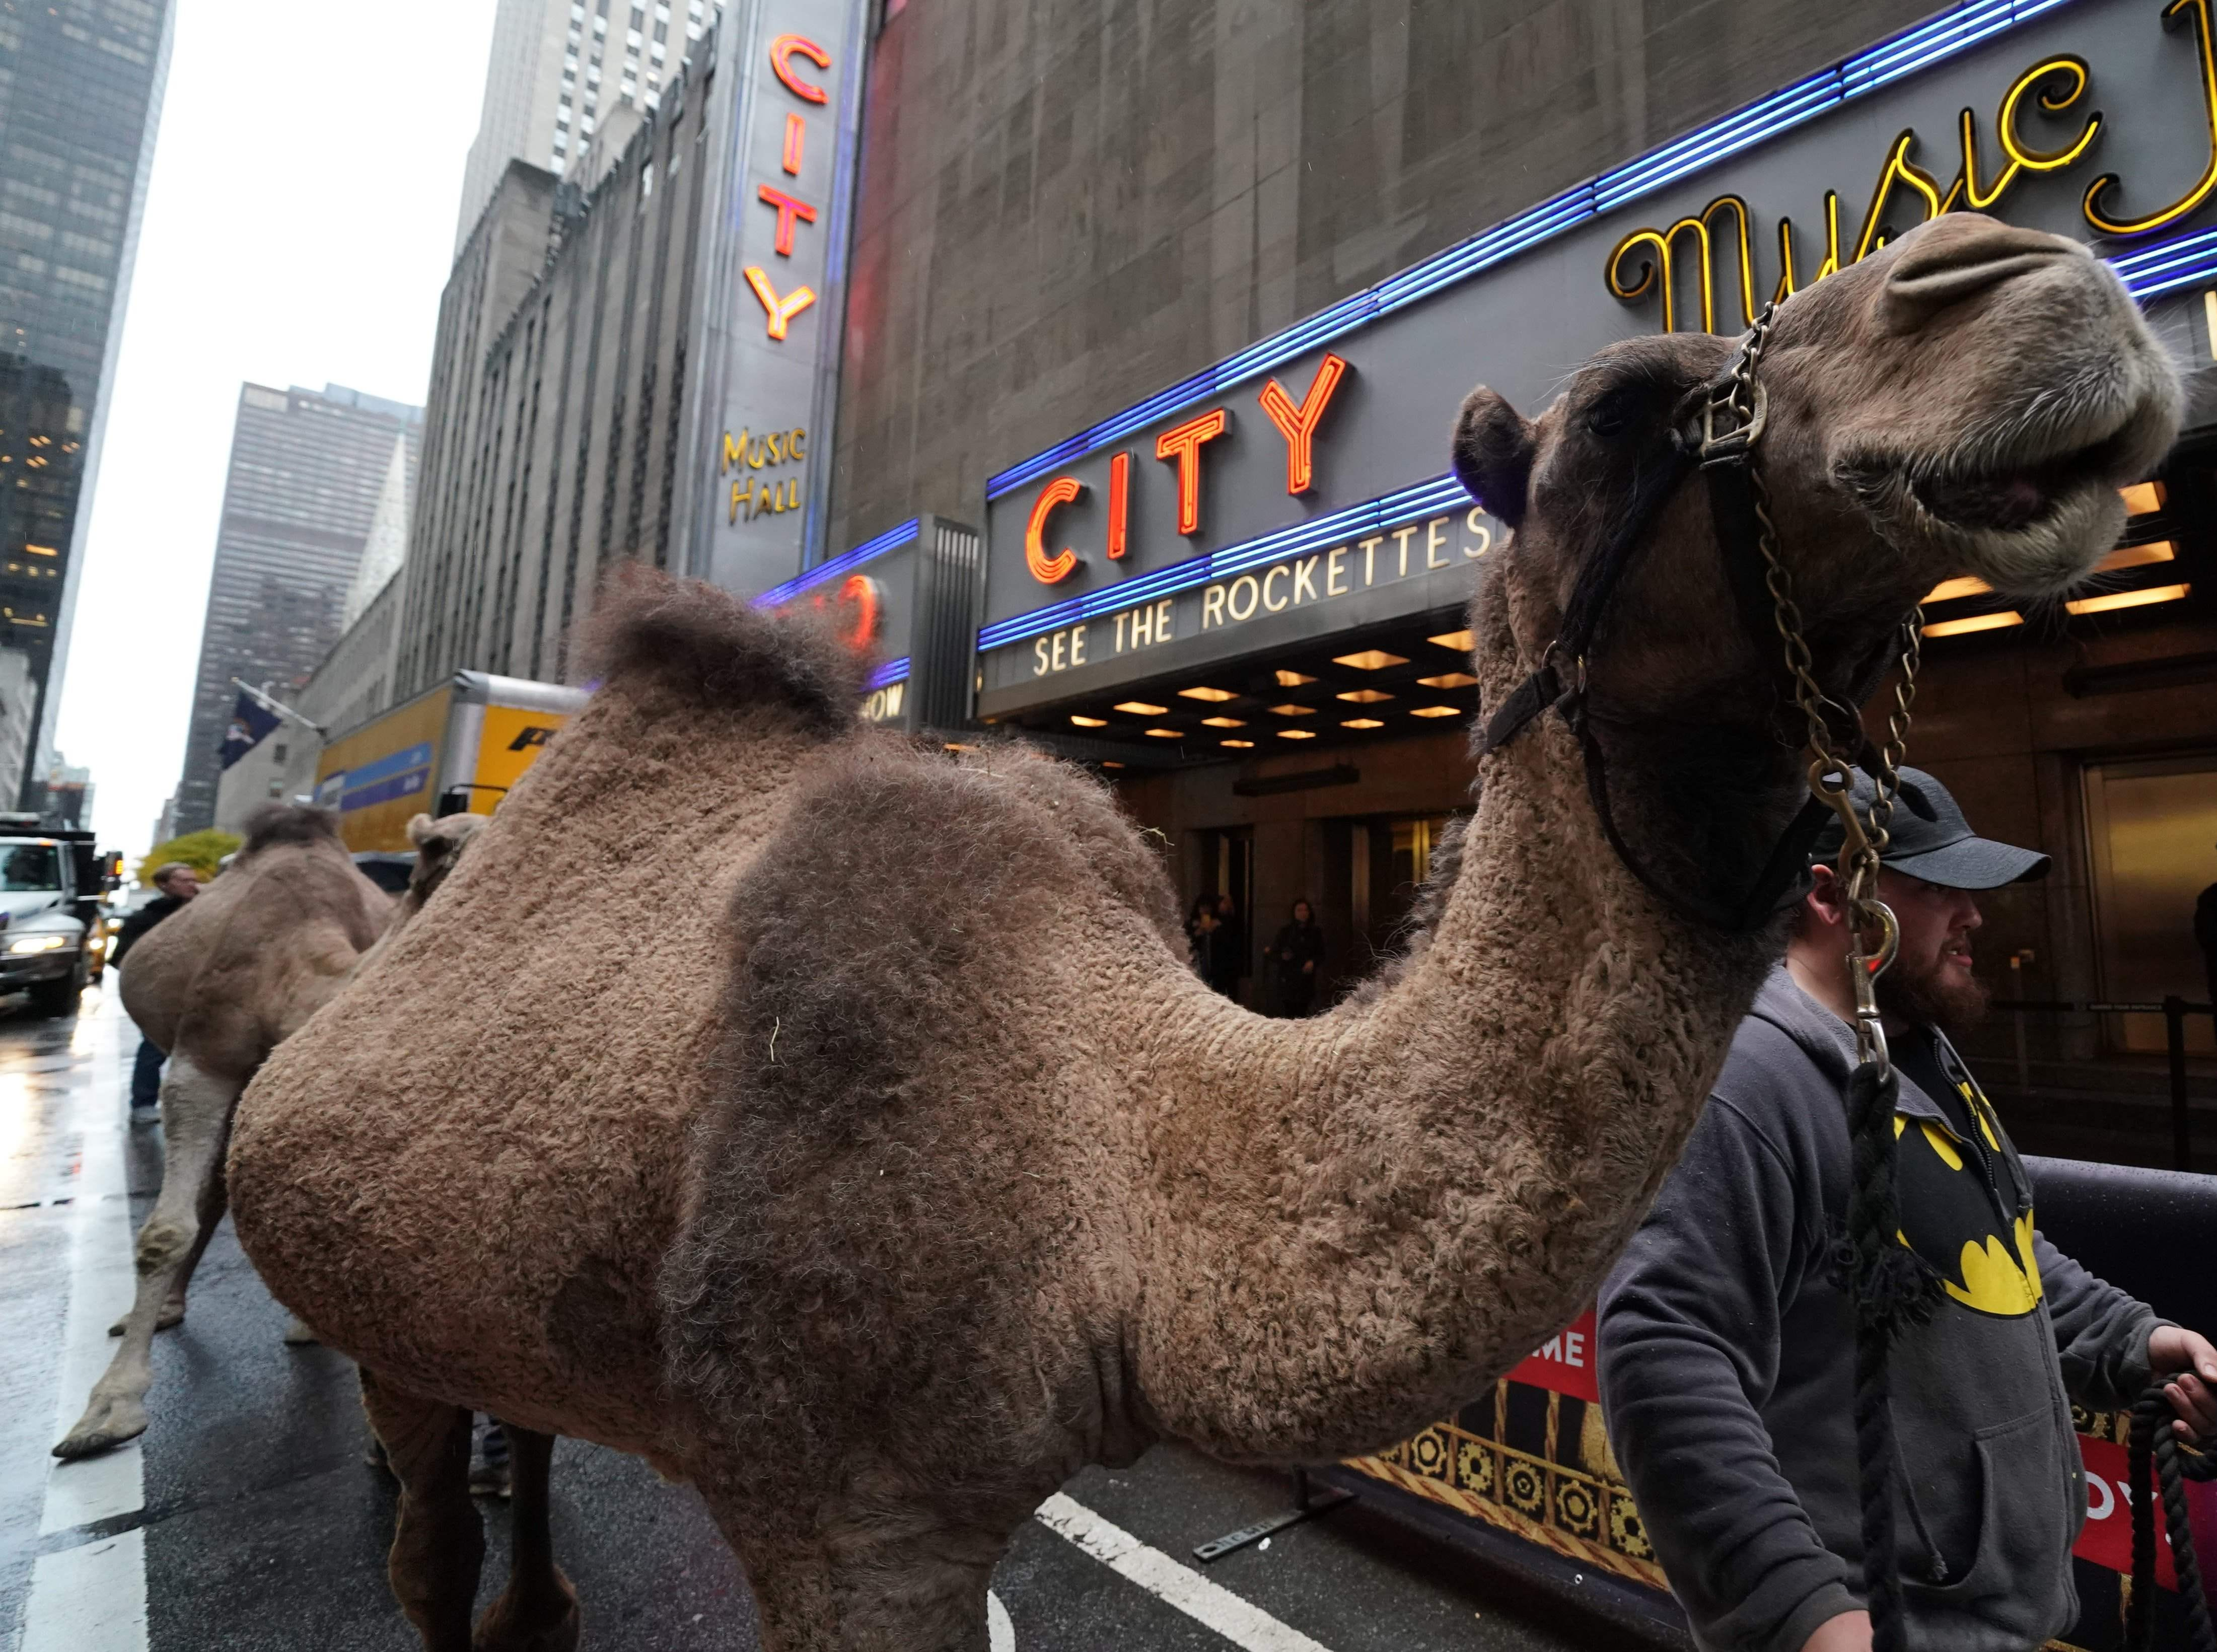 Camels are escorted November 5, 2018 in New York as camels, sheep and donkey are welcomed back to Radio City Music Hall November 5, 2018 in New York for their starring role in the Living Nativity scene of the 2018 production of the Christmas Spectacular. - The Christmas Spectacular starring the Radio City Rockettes, presented by Chase, will run from November 9  January 1, 2019. (Photo by TIMOTHY A. CLARY / AFP)TIMOTHY A. CLARY/AFP/Getty Images